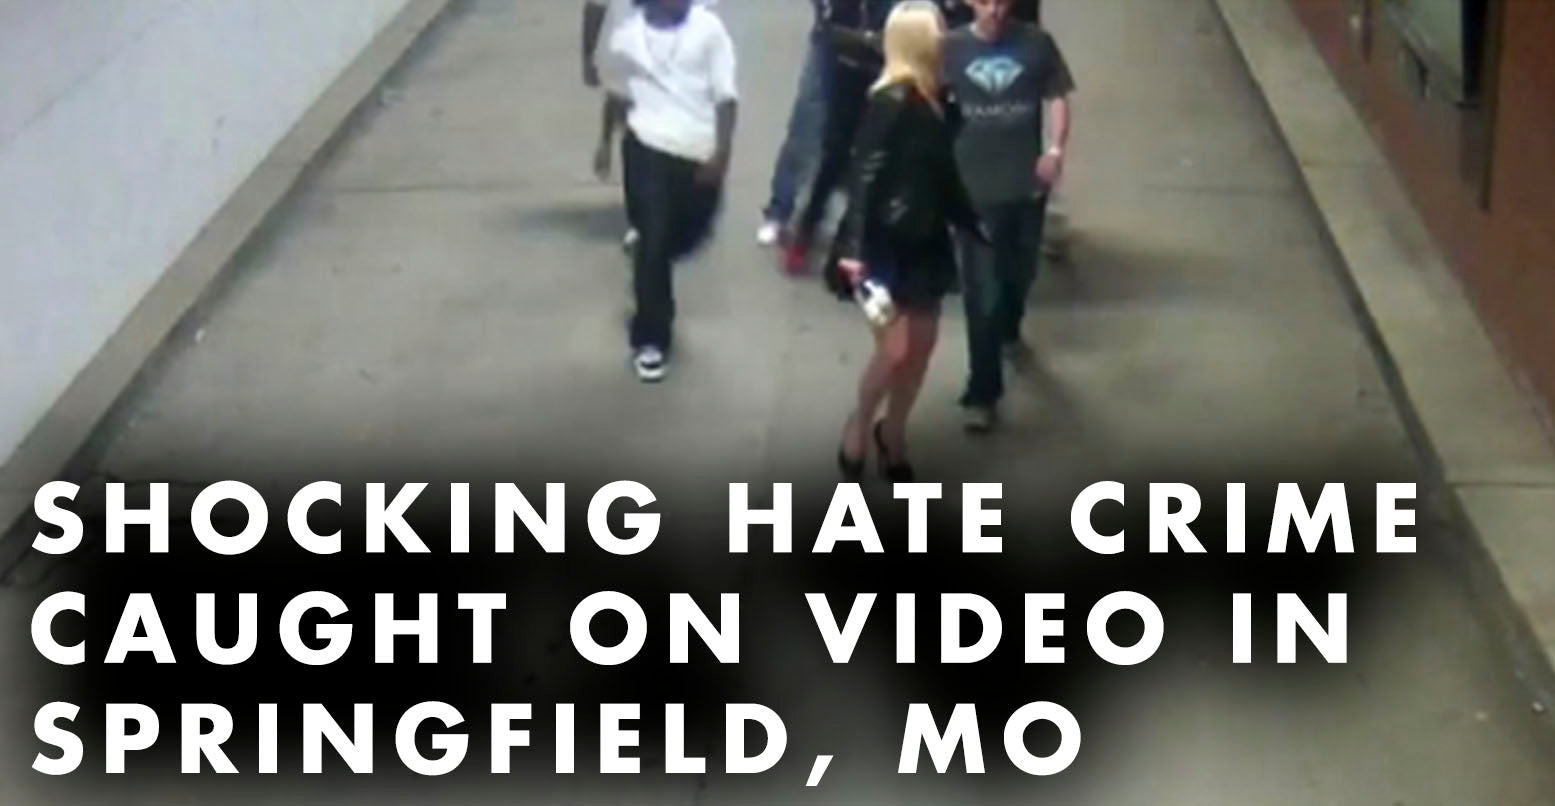 Shocking Hate Crime Caught On VIDEO In Springfield, MO